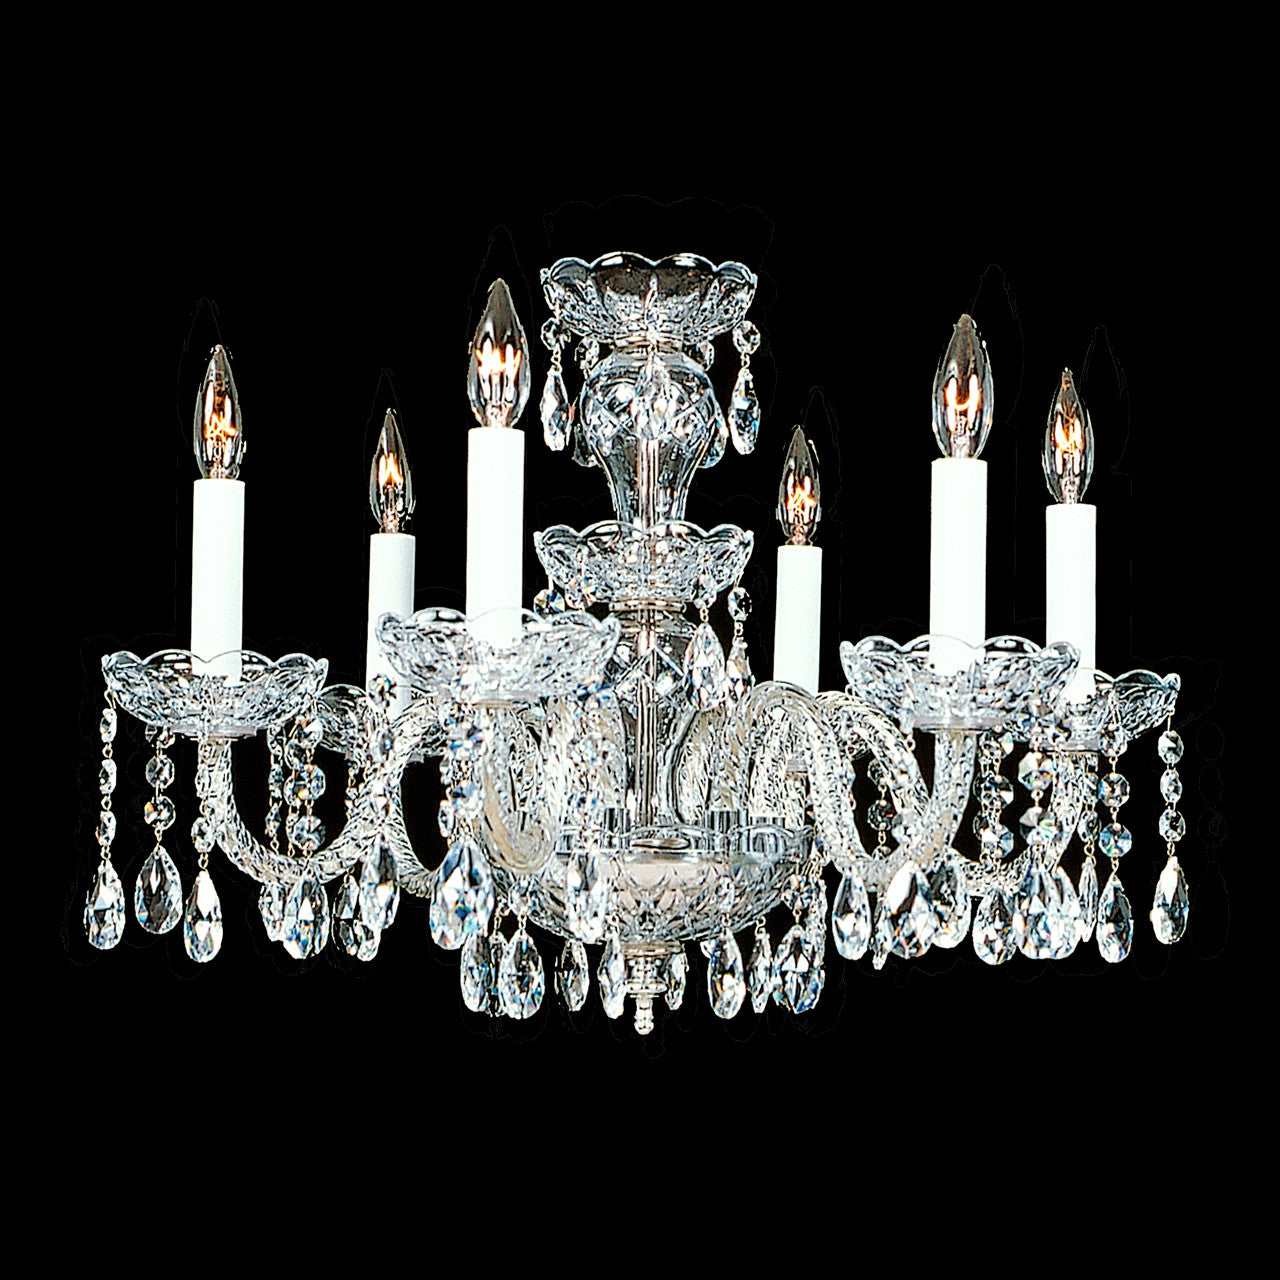 Wentworth 6 light crystal chandelier with swarovski 18 x 15 crystal chandelier wentworth with swarovski wentworth crystal chandelier shown with nickel note the clear wire in the arms arubaitofo Images